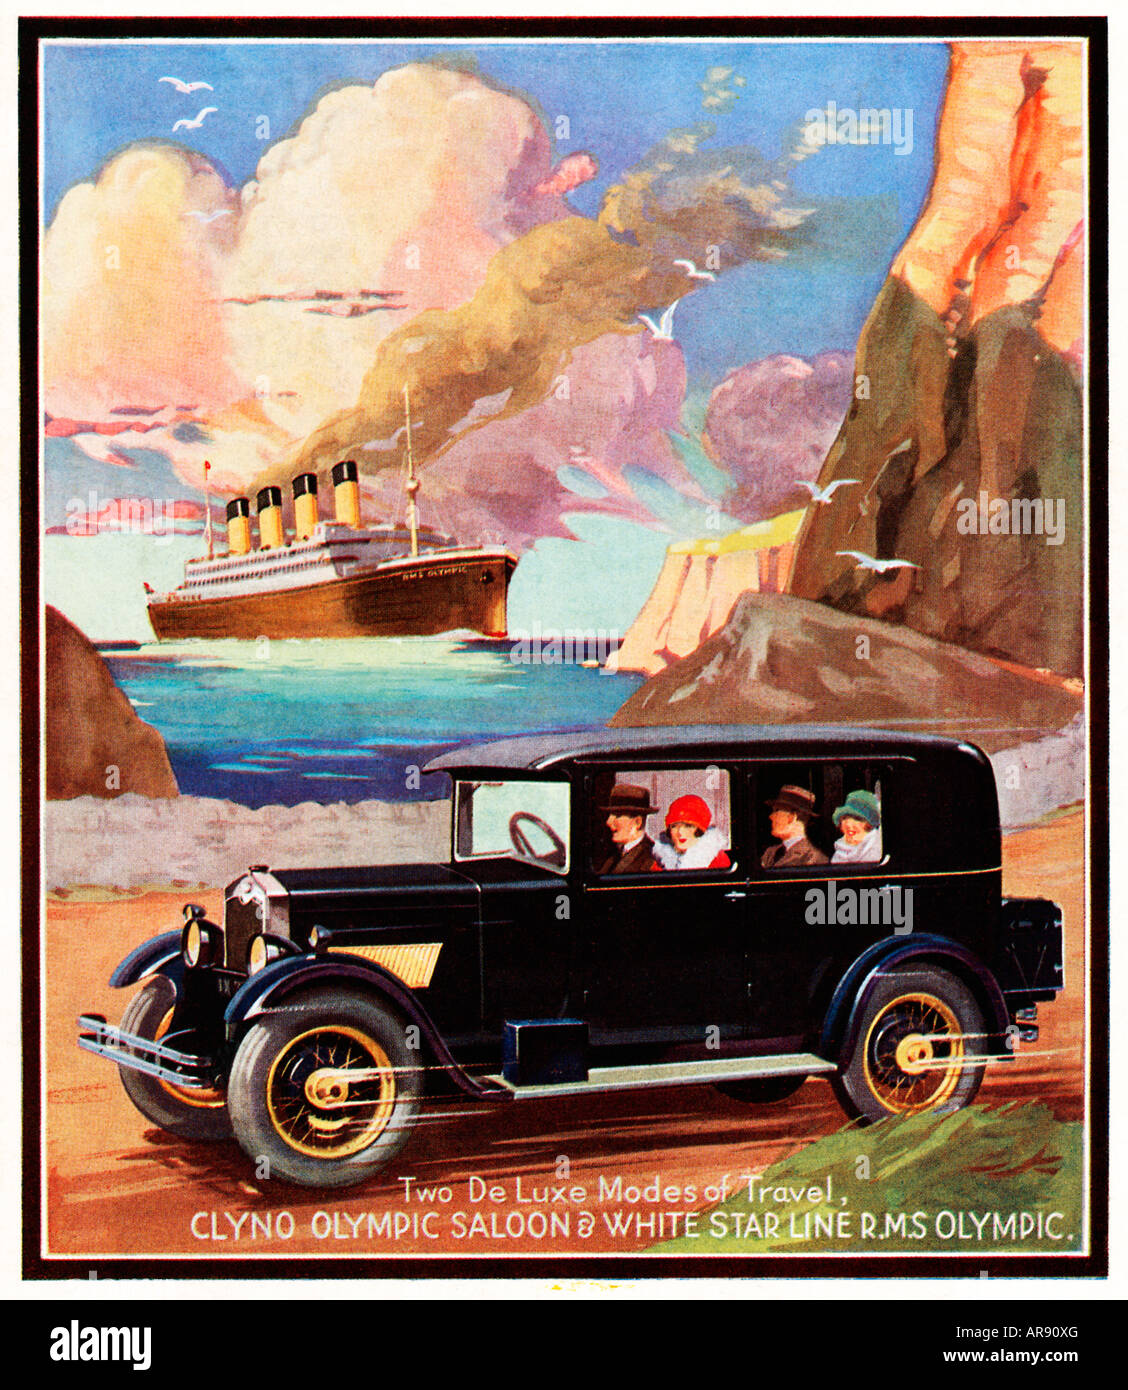 Two De Luxe Modes of Travel 1928 advert for the Clyno Olympic Saloon car White Star RMS Olympic at sea behind - Stock Image